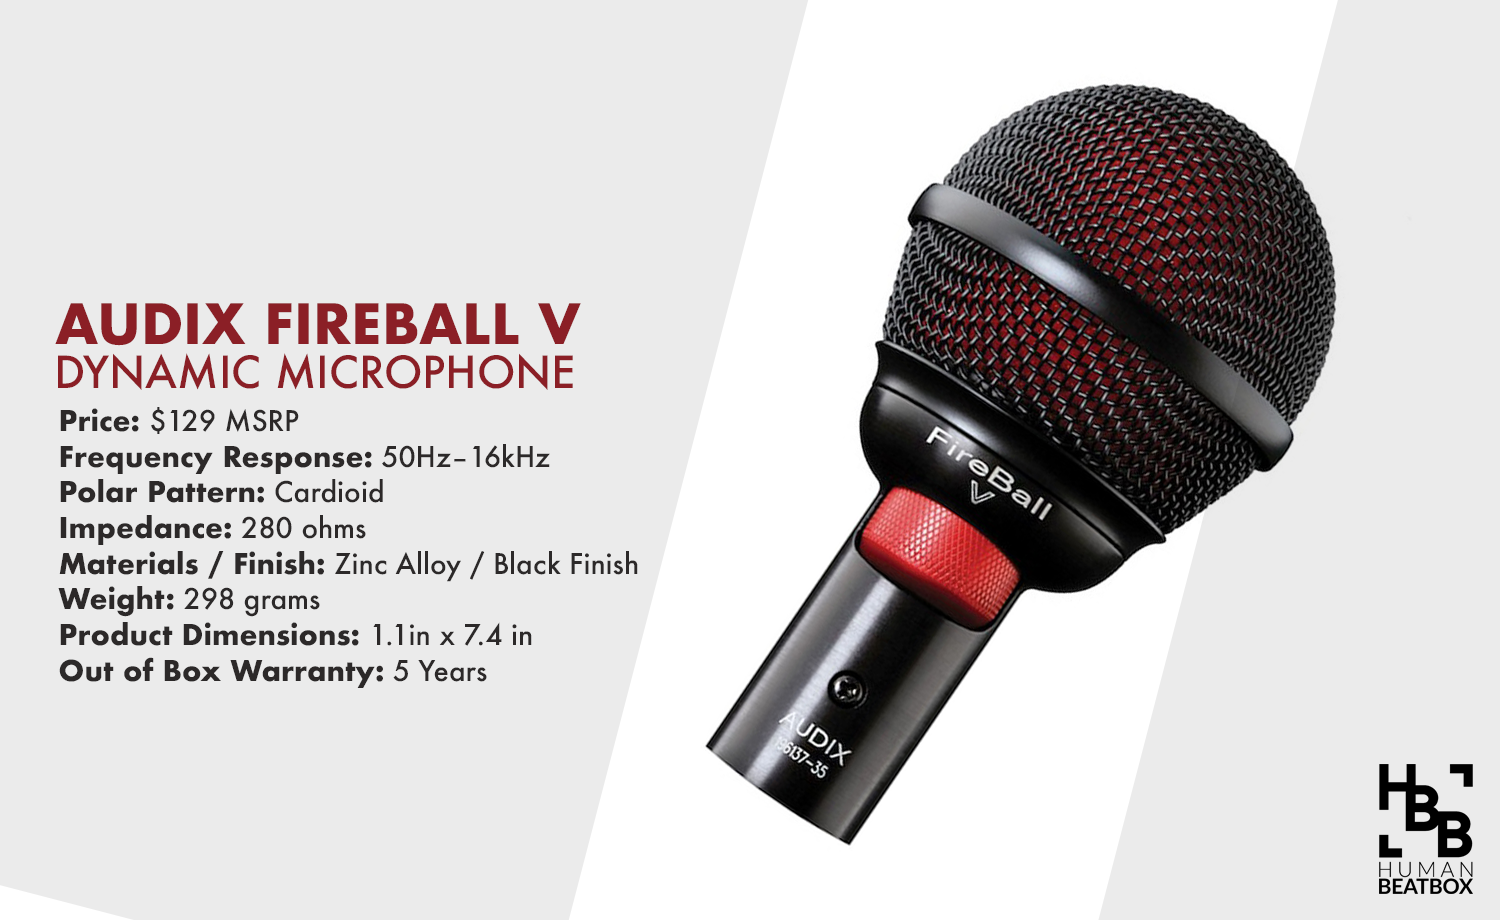 audix-fireball-v-microphone